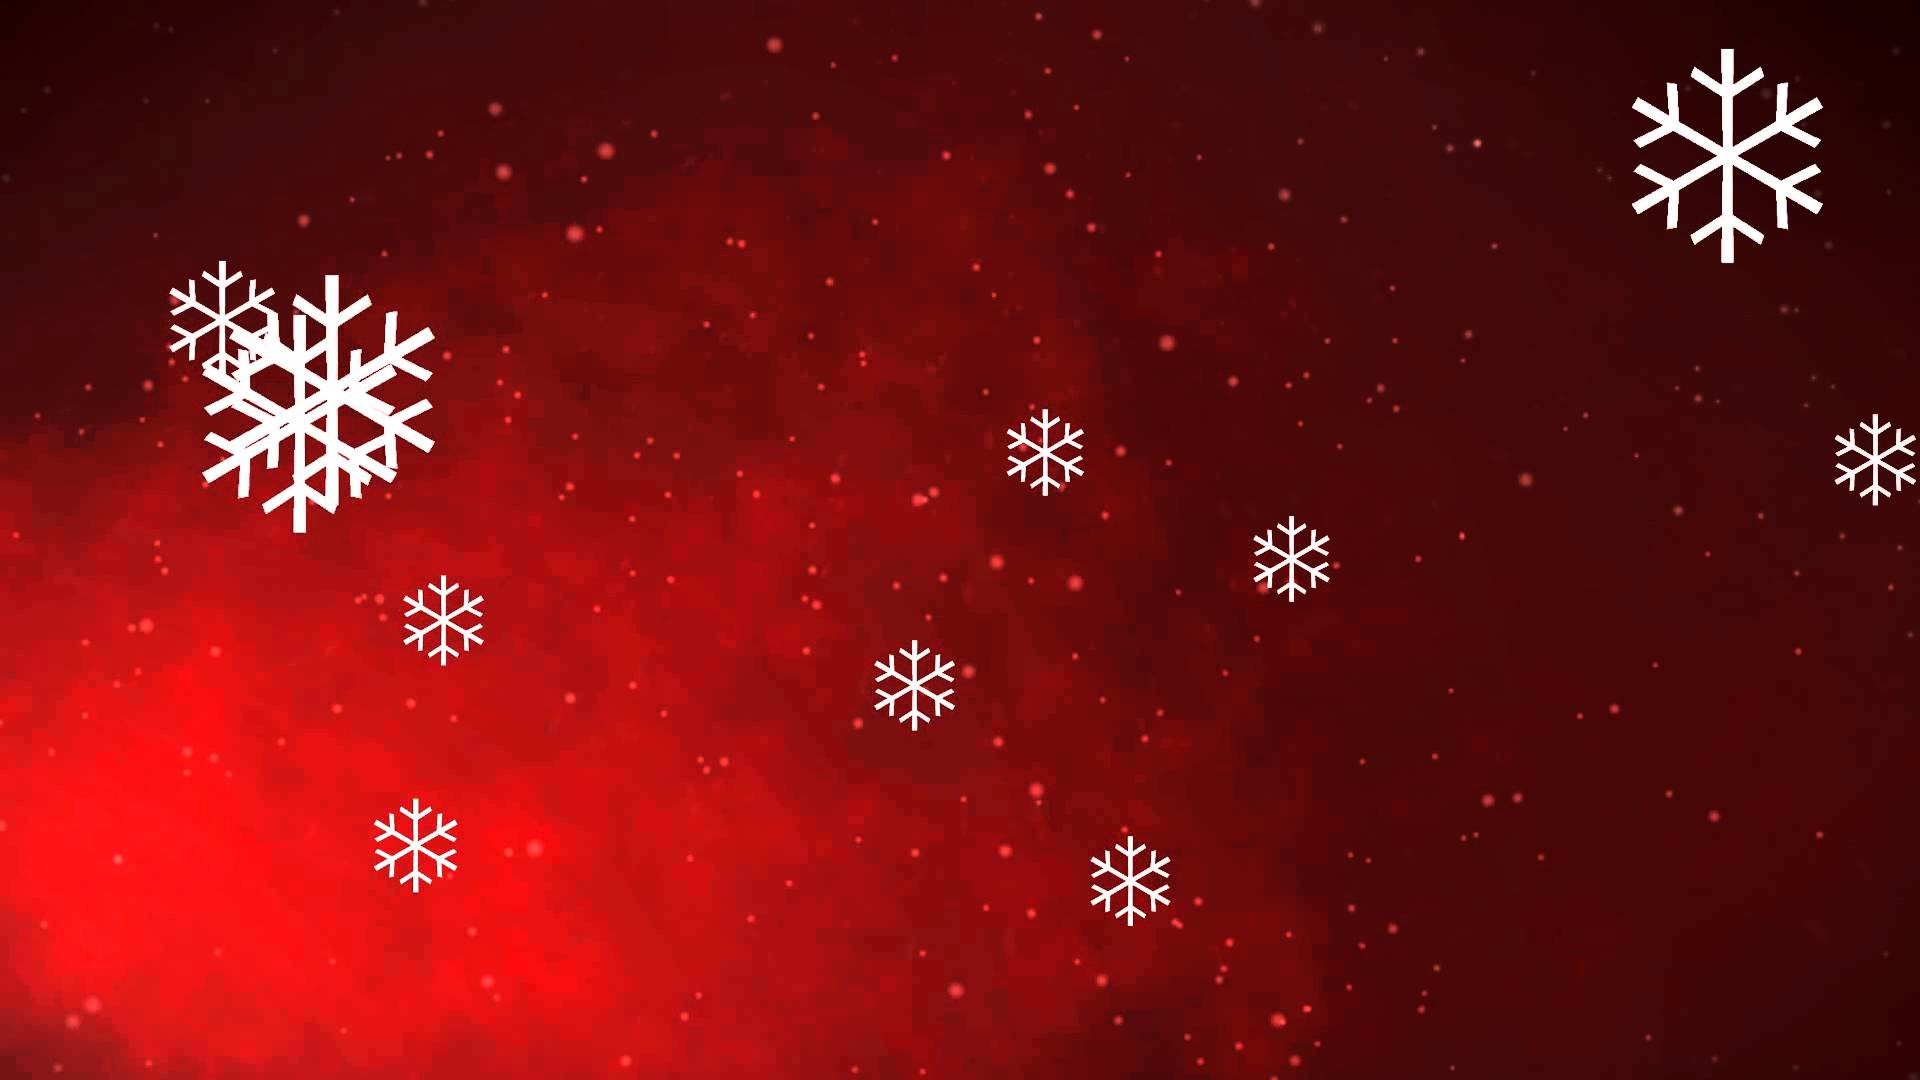 Free Animated Snow Falling Wallpaper Snowflakes Background 43 Images